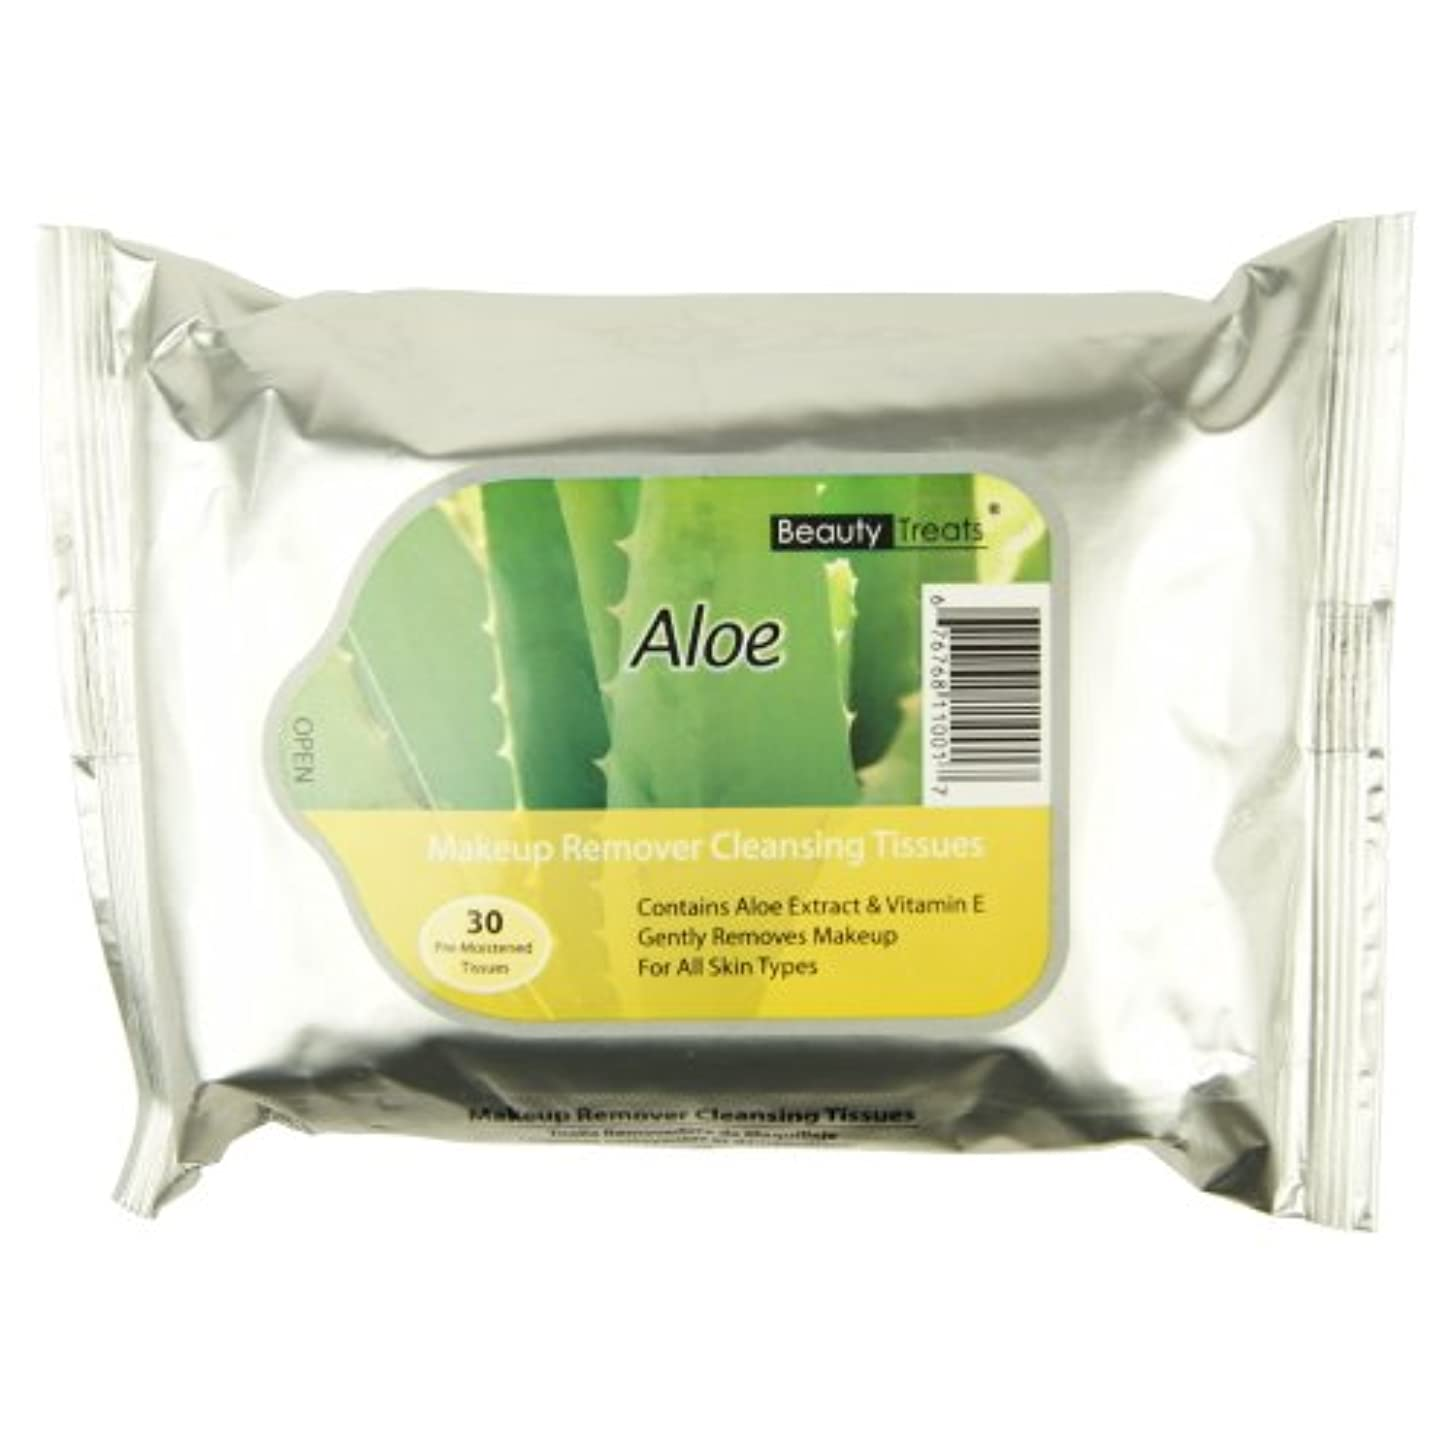 BEAUTY TREATS Makeup Remover Cleansing Tissues - Aloe (並行輸入品)